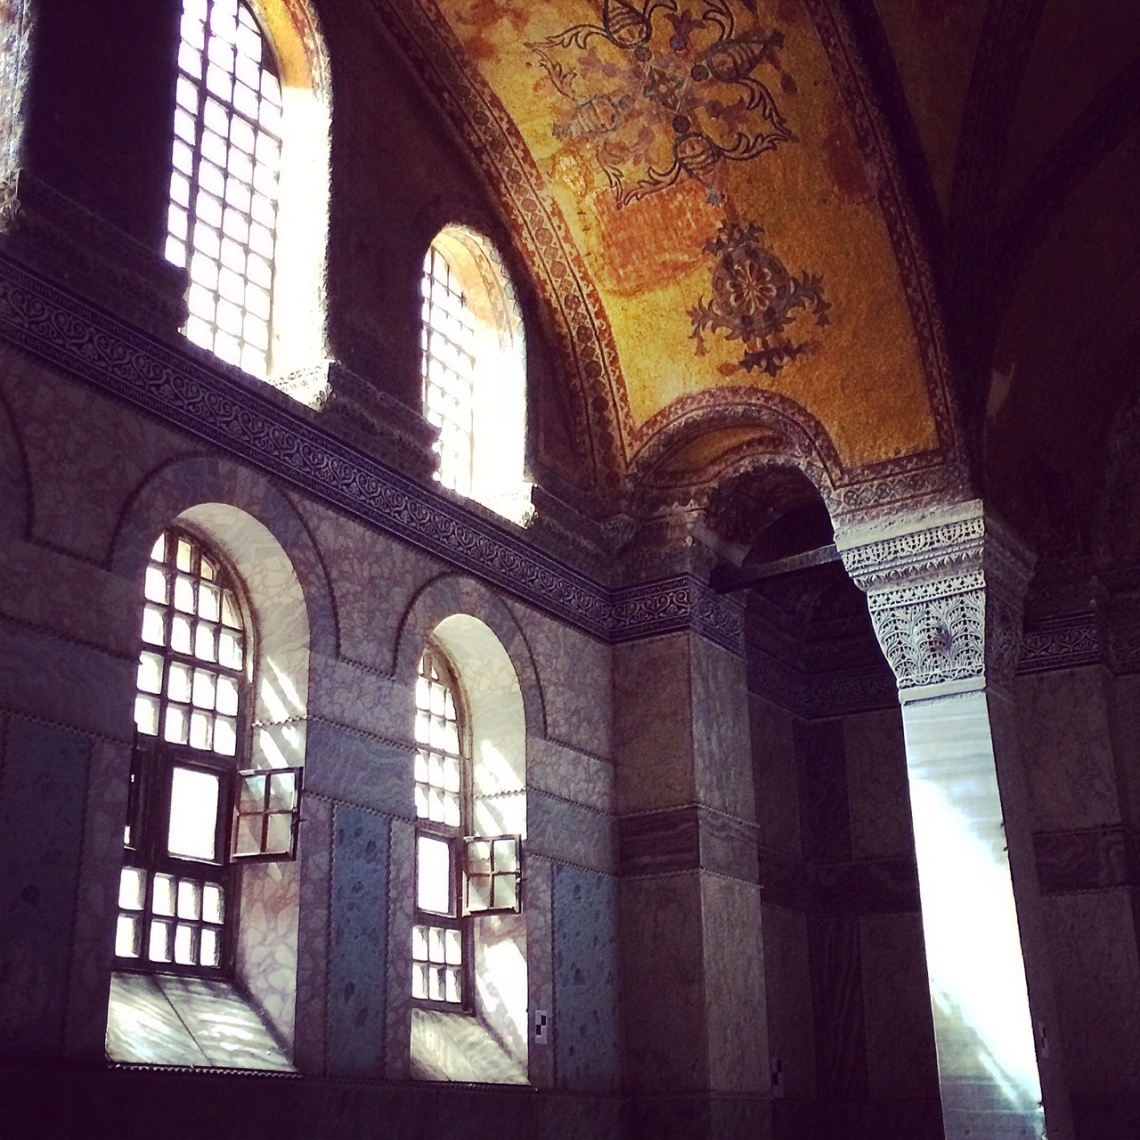 Sunlight entering the Hagia Sofia in Istanbul. Photo by Kate Devine.